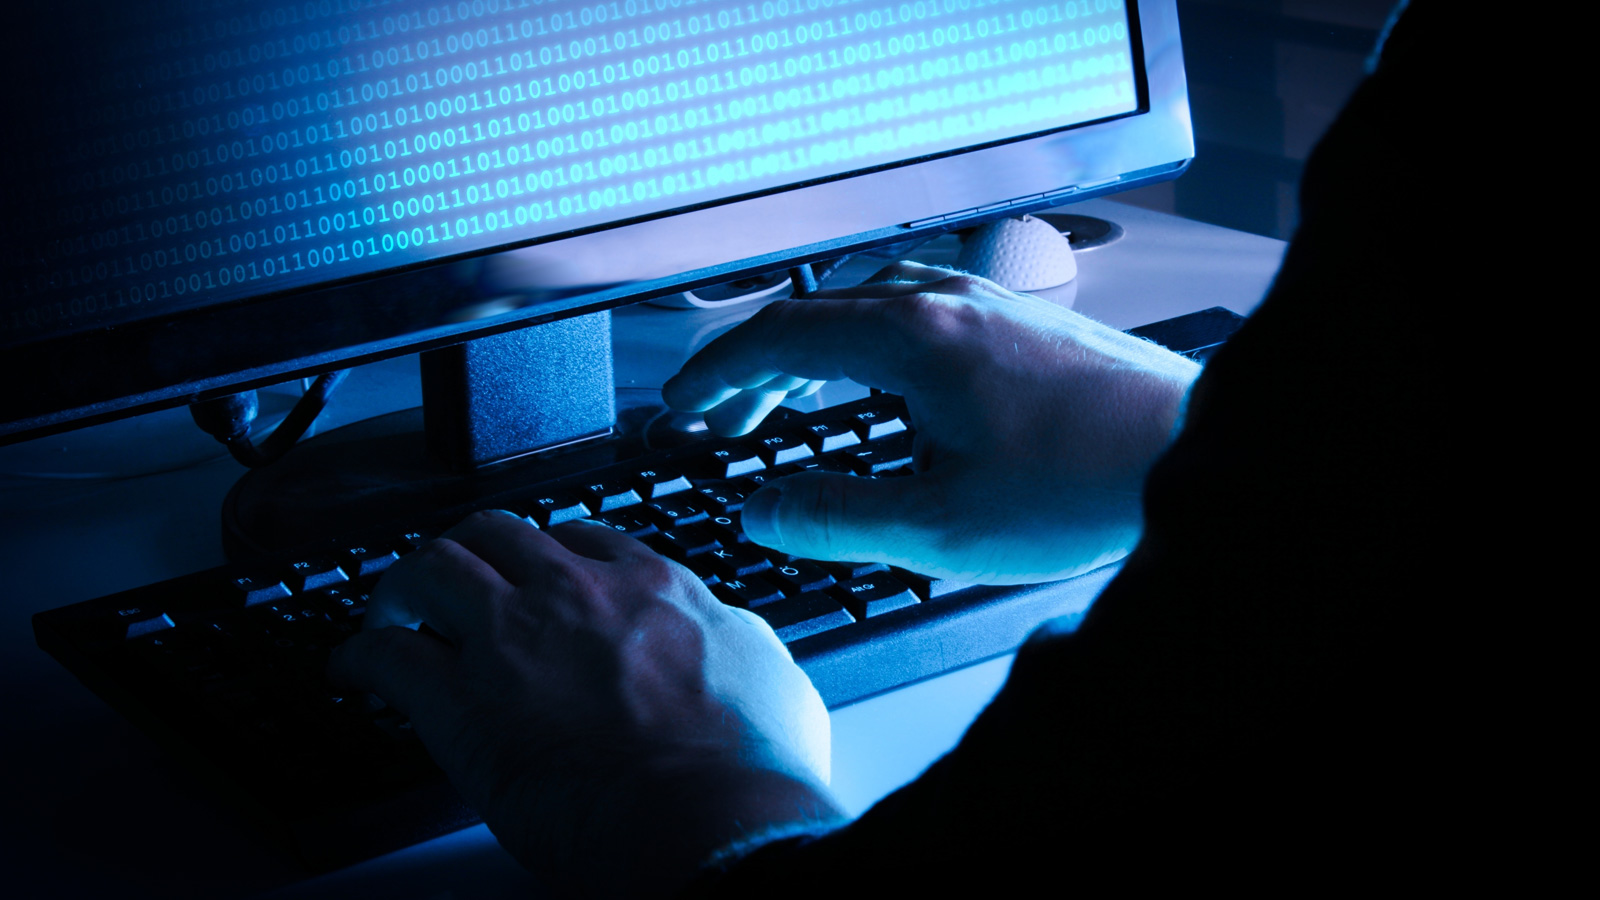 Russian state hackers use new TinyTurla malware for added persistence